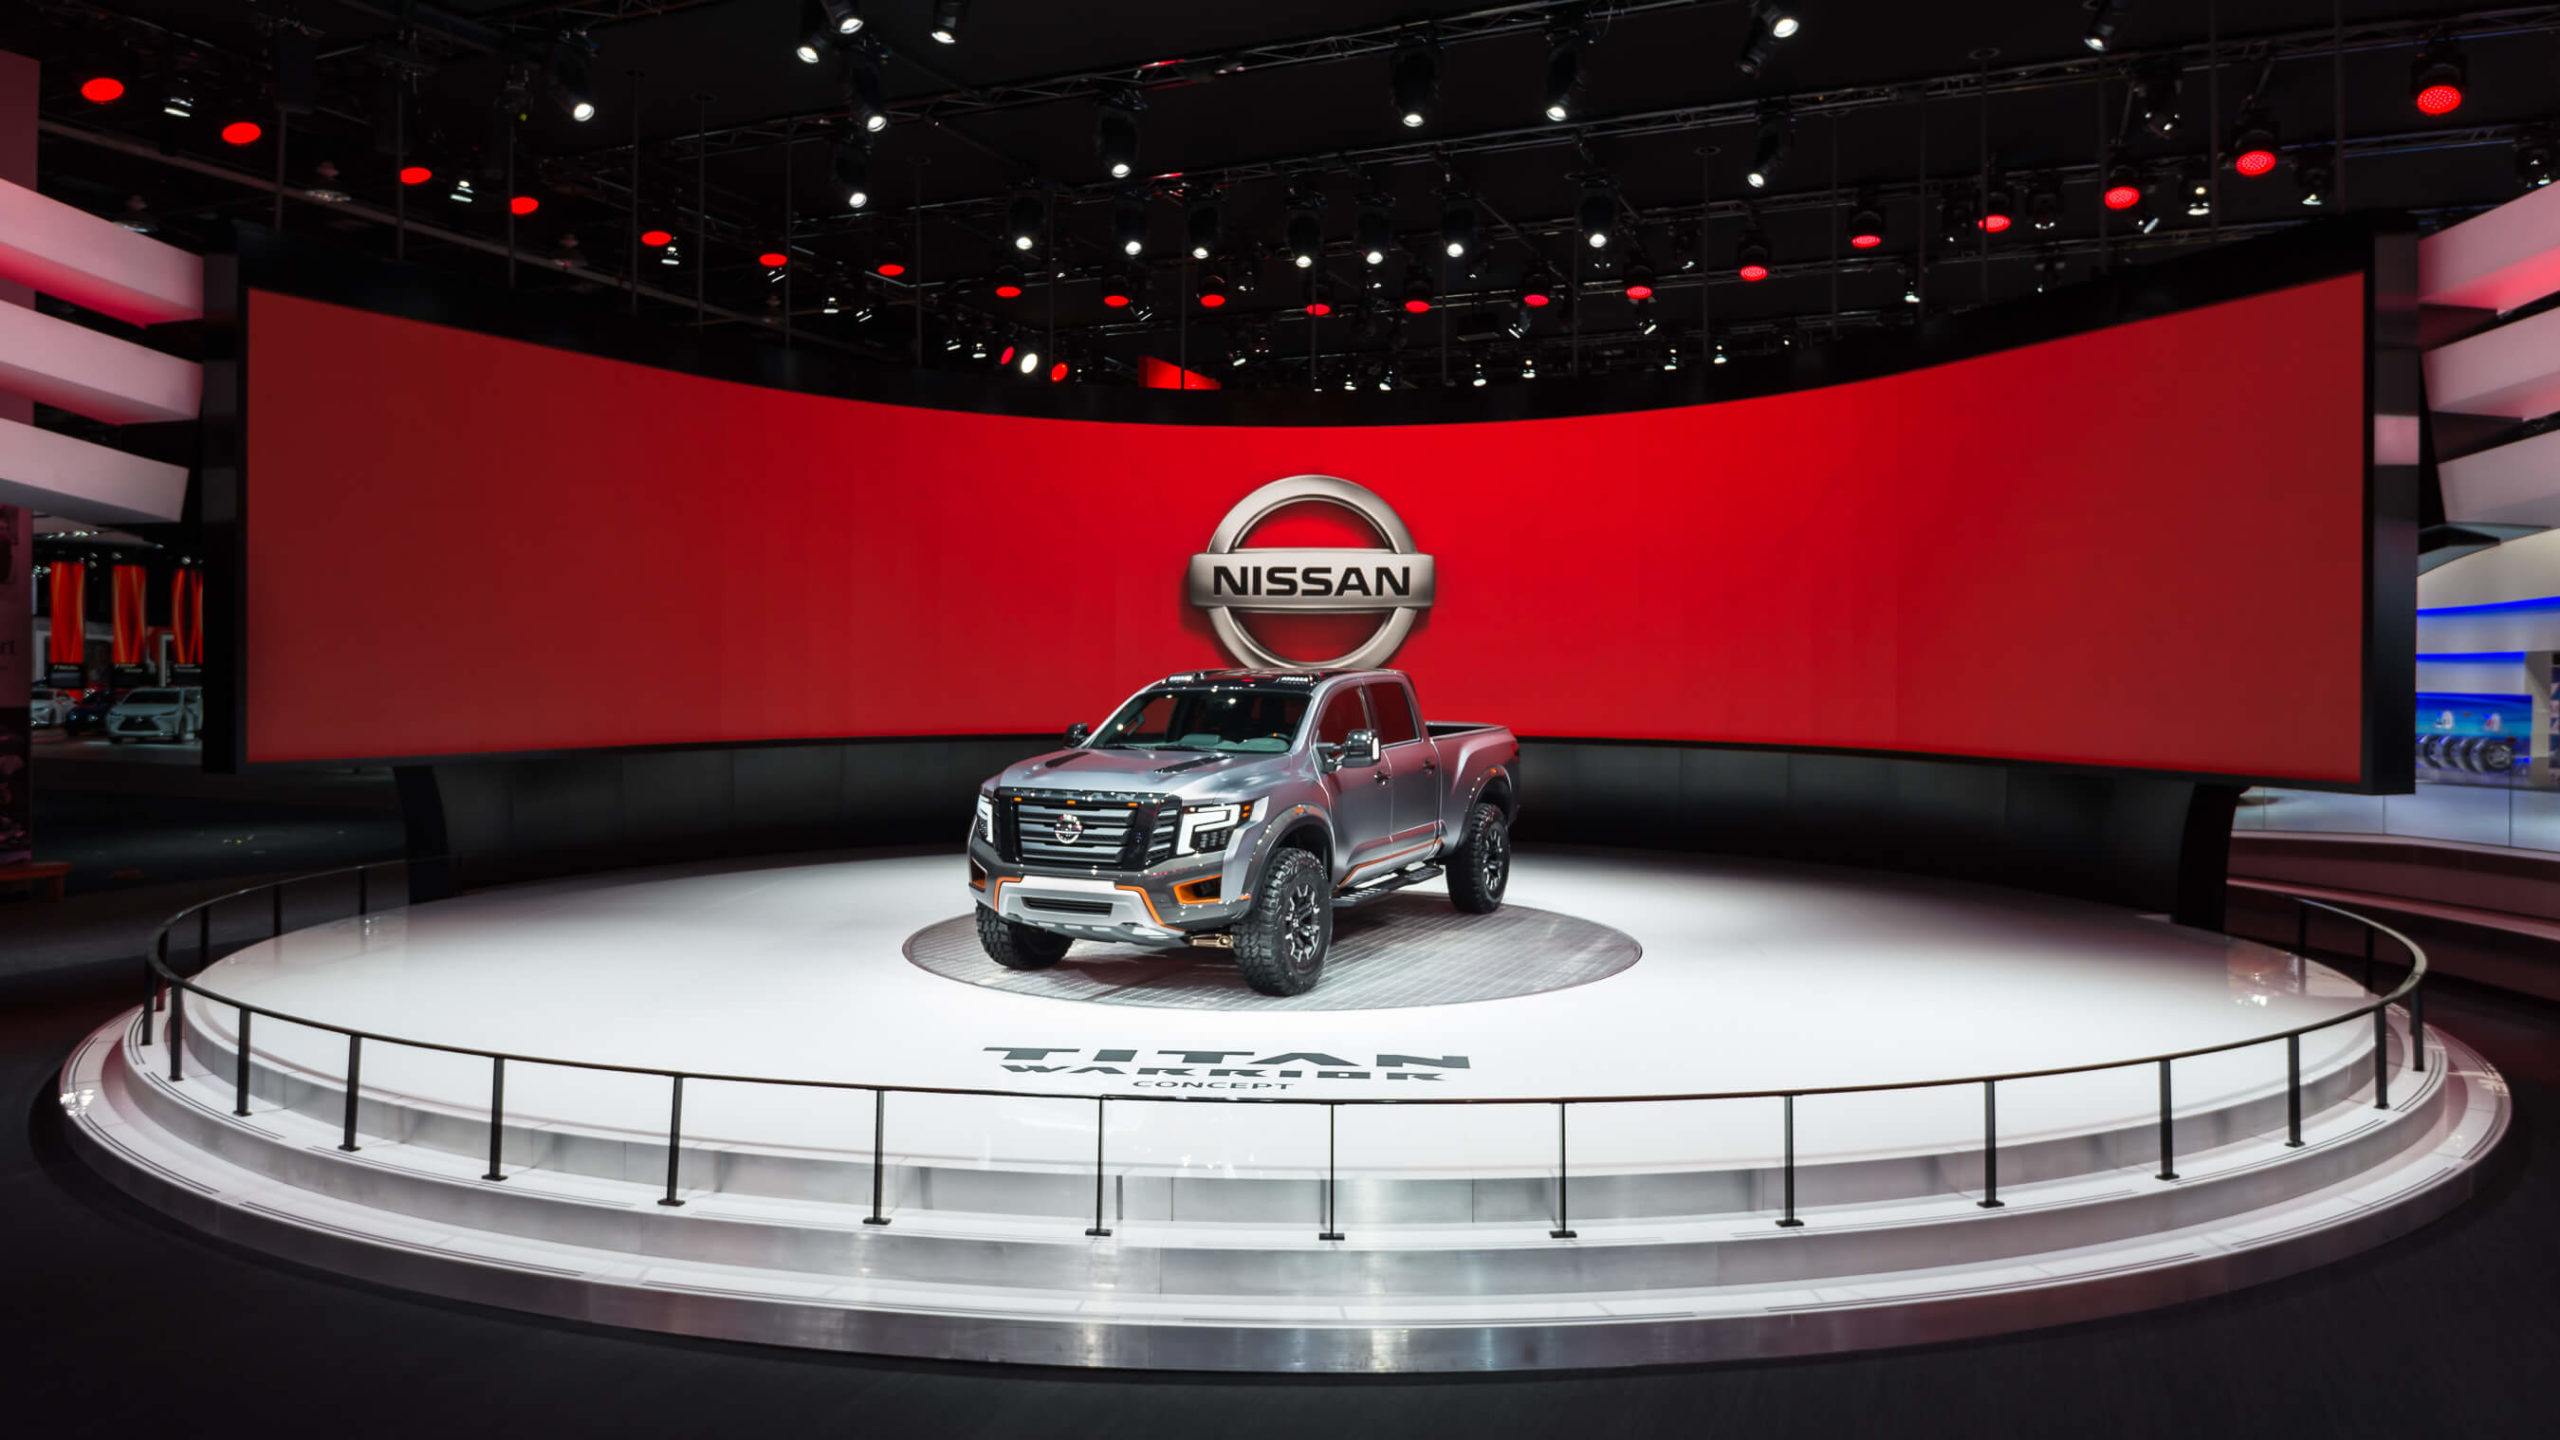 Nissan truck at an auto show